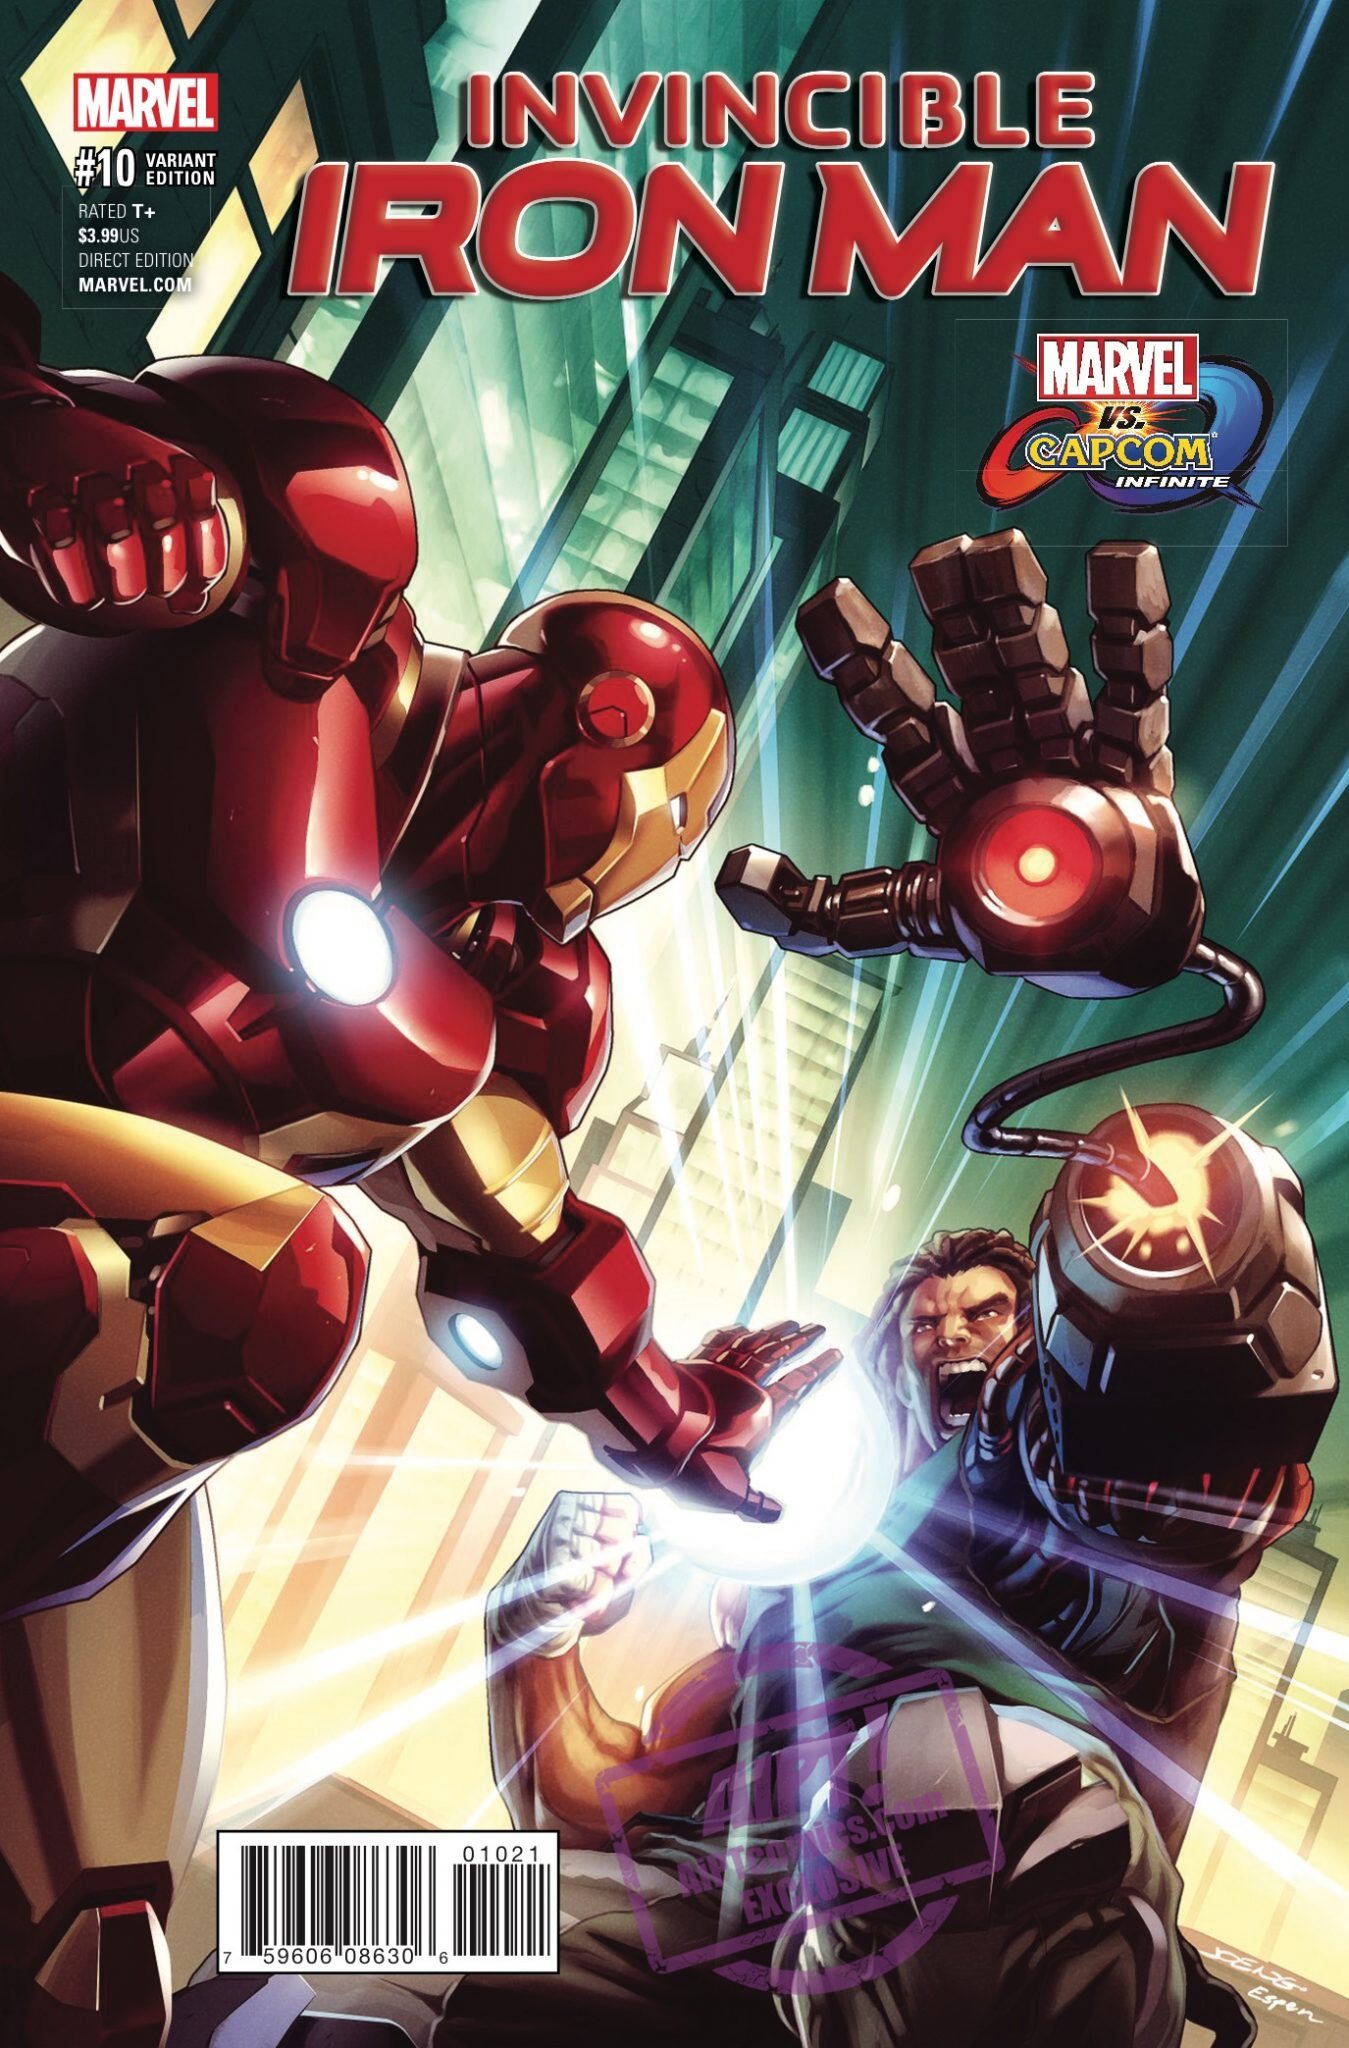 [EXCLUSIVE] Marvel Preview: Invincible Iron Man #10